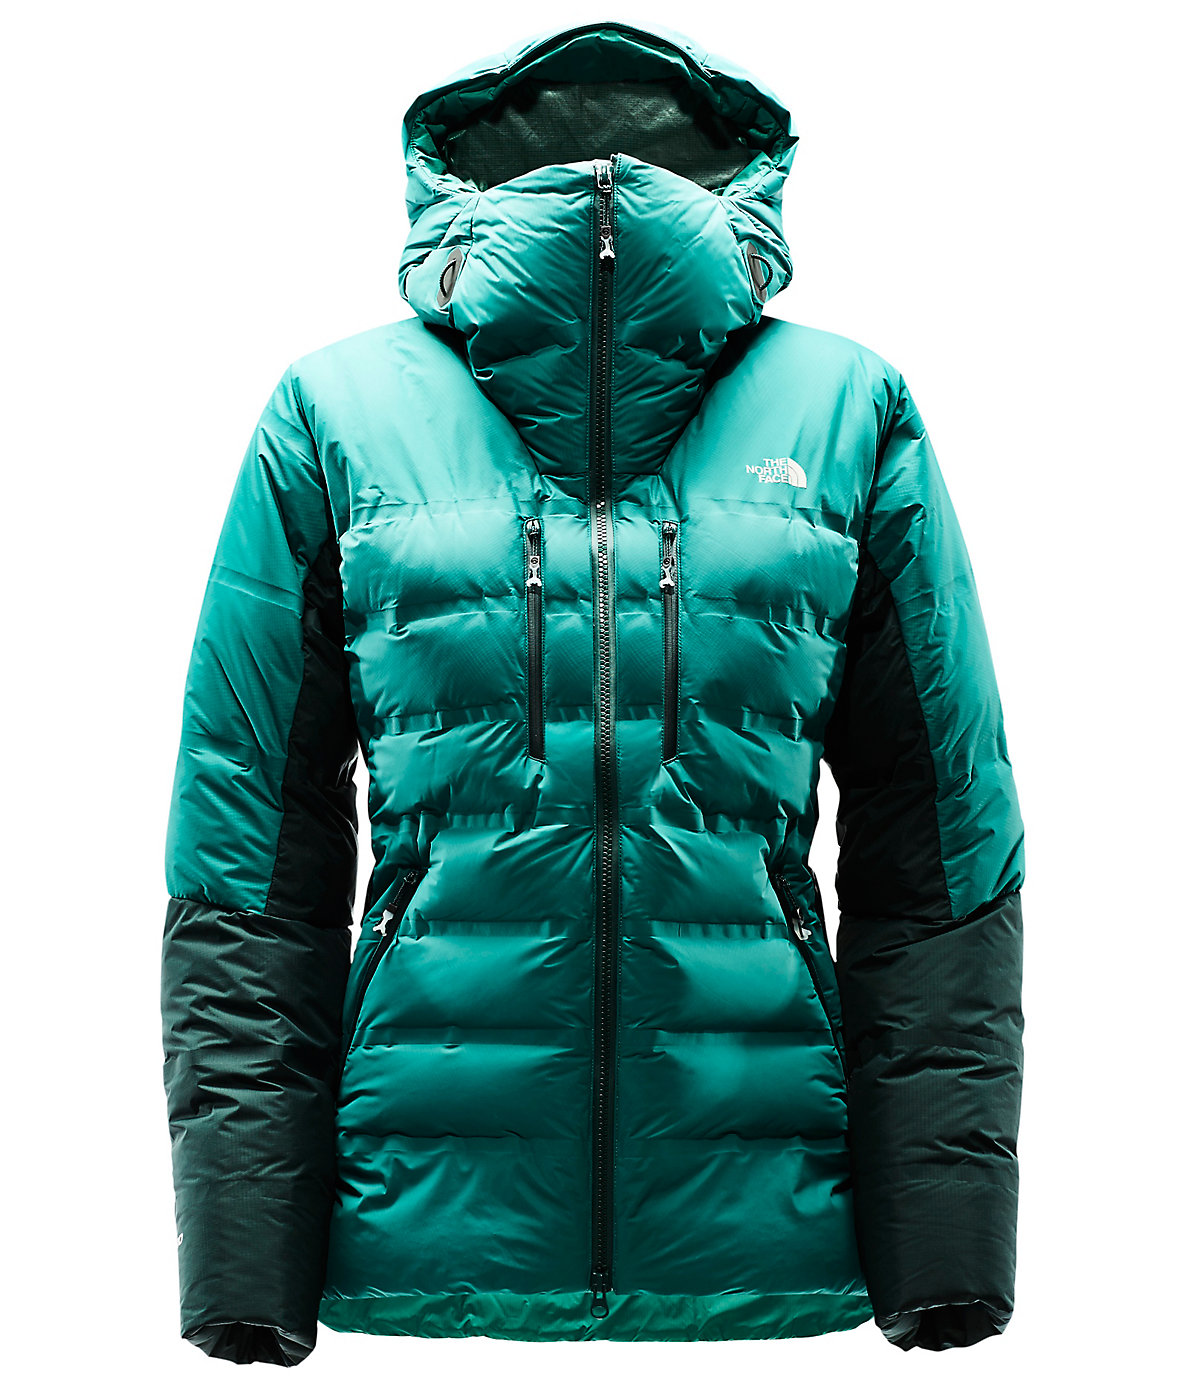 7d10c956e The North Face Women's Summit L6 Down Jacket